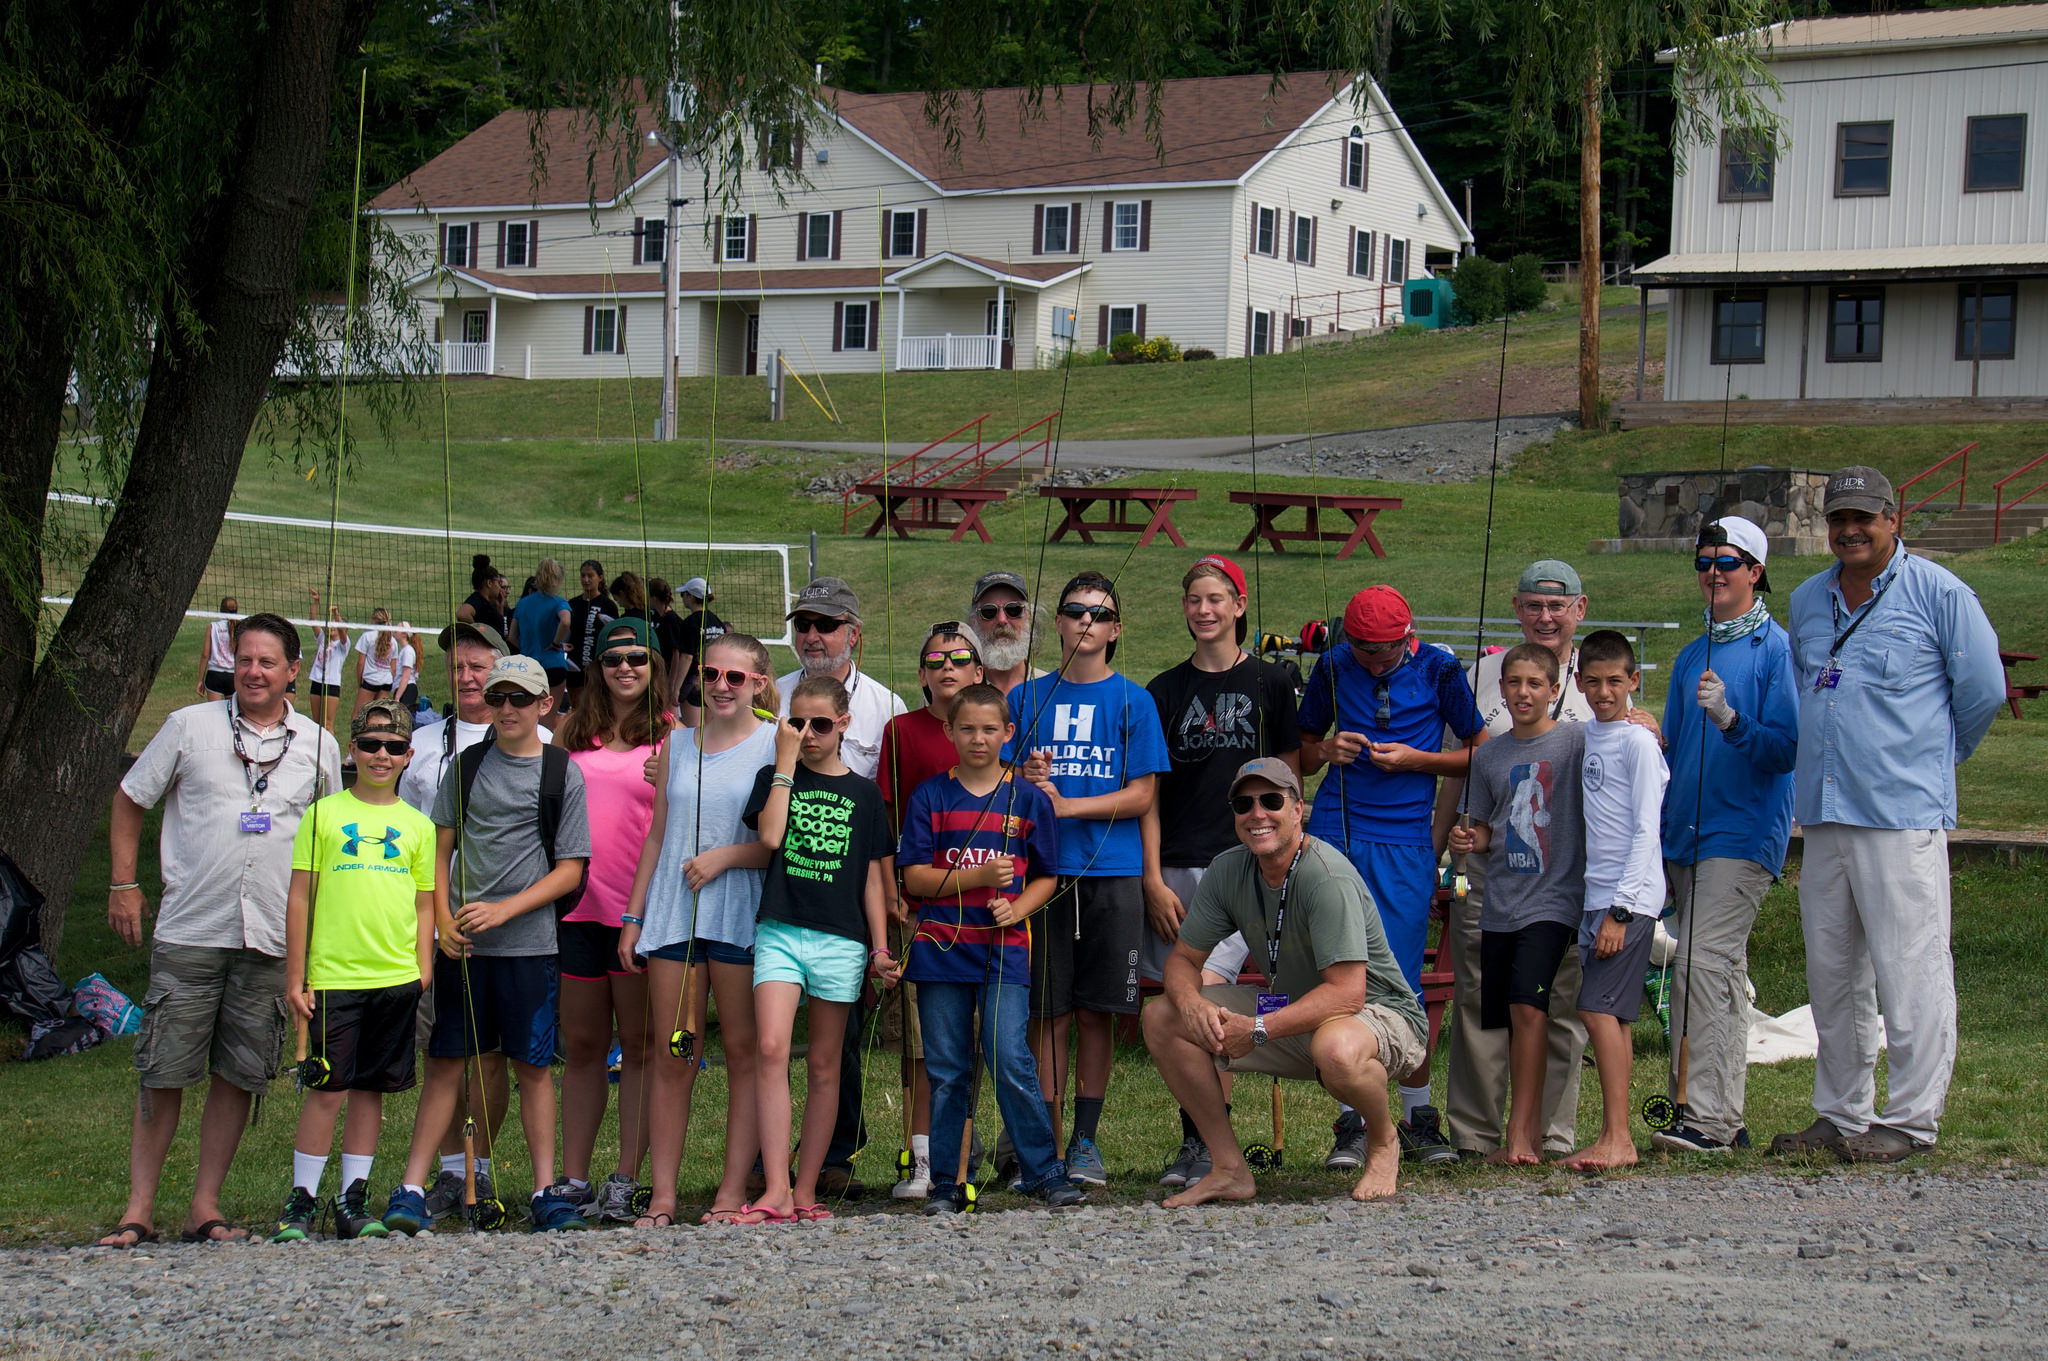 Friends of the Upper Delaware River (FUDR) partner with local Bill Canfield Fly Fishing School in a summer camp that teaches teens about the sport of fly fishing and the importance of river conservation. Photo courtesy of Friends of the Upper Delaware